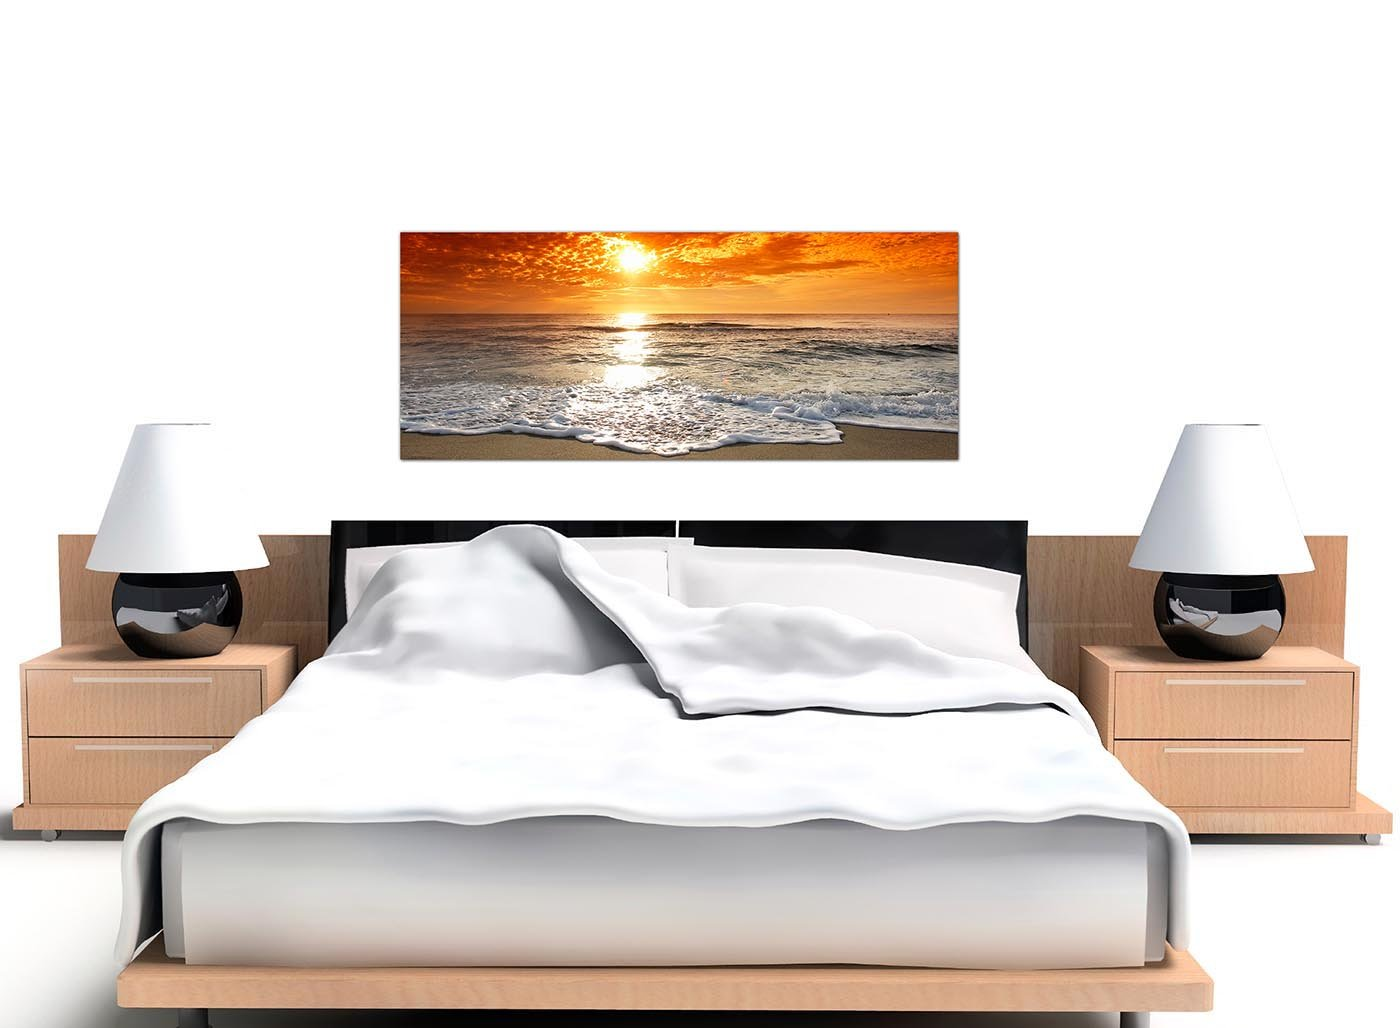 Cheap Canvas Pictures Of A Tropical Beach Sunset For Your Bedroom    Panoramic Seaside Wall Art   1152   Wallfillers®: Amazon.co.uk: Kitchen U0026  Home